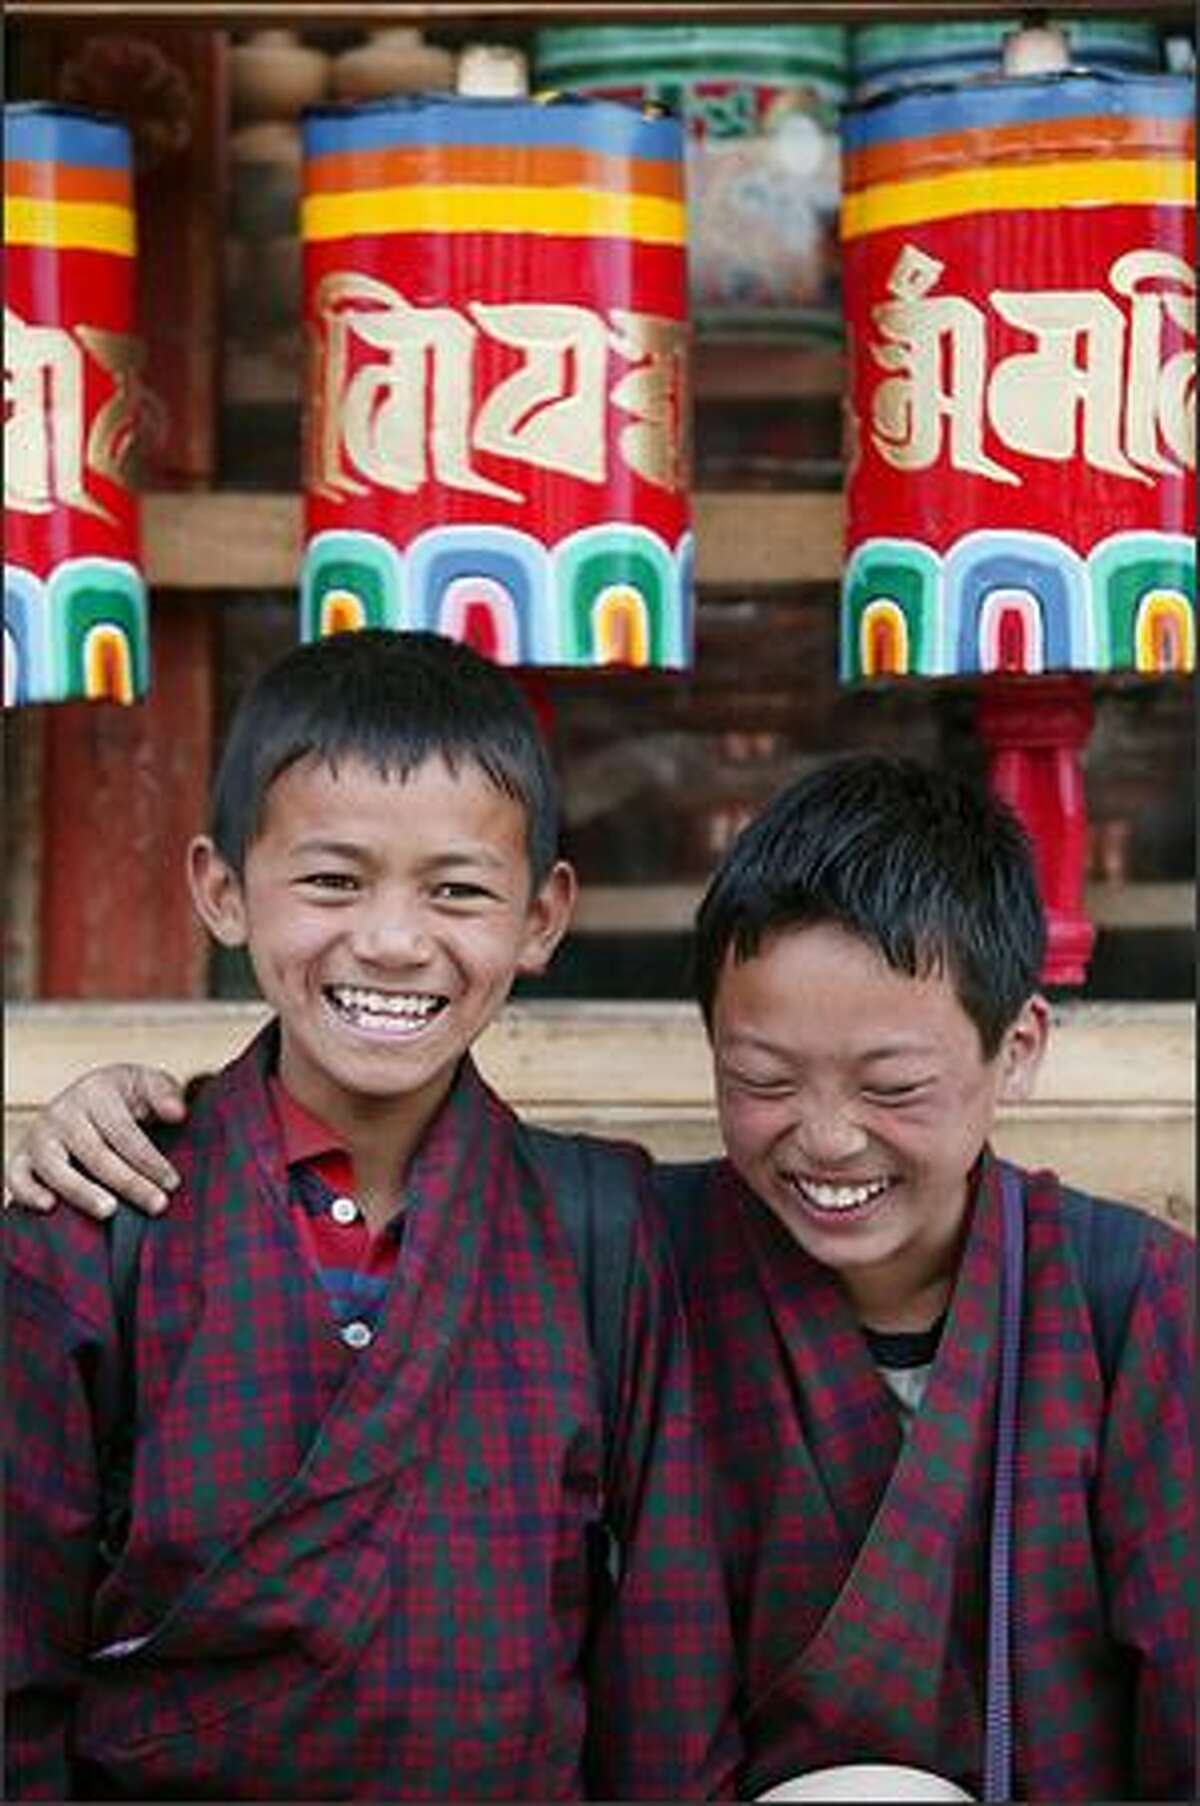 Art Wolfe's photo of children in Bhutan from the TV series